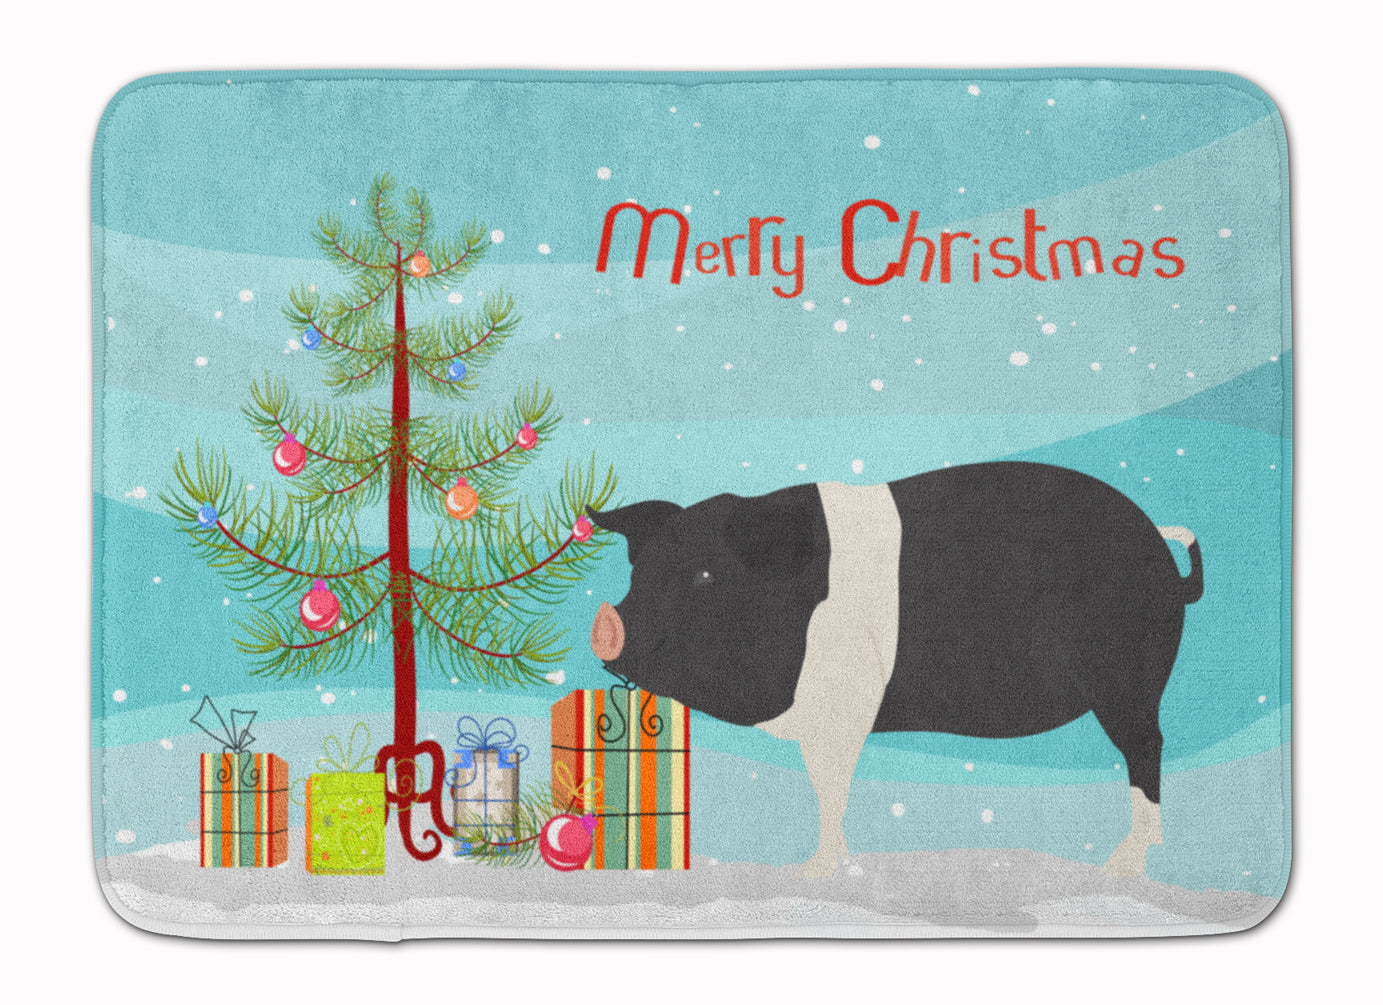 Hampshire Pig Christmas Machine Washable Memory Foam Mat BB9306RUG by Caroline's Treasures